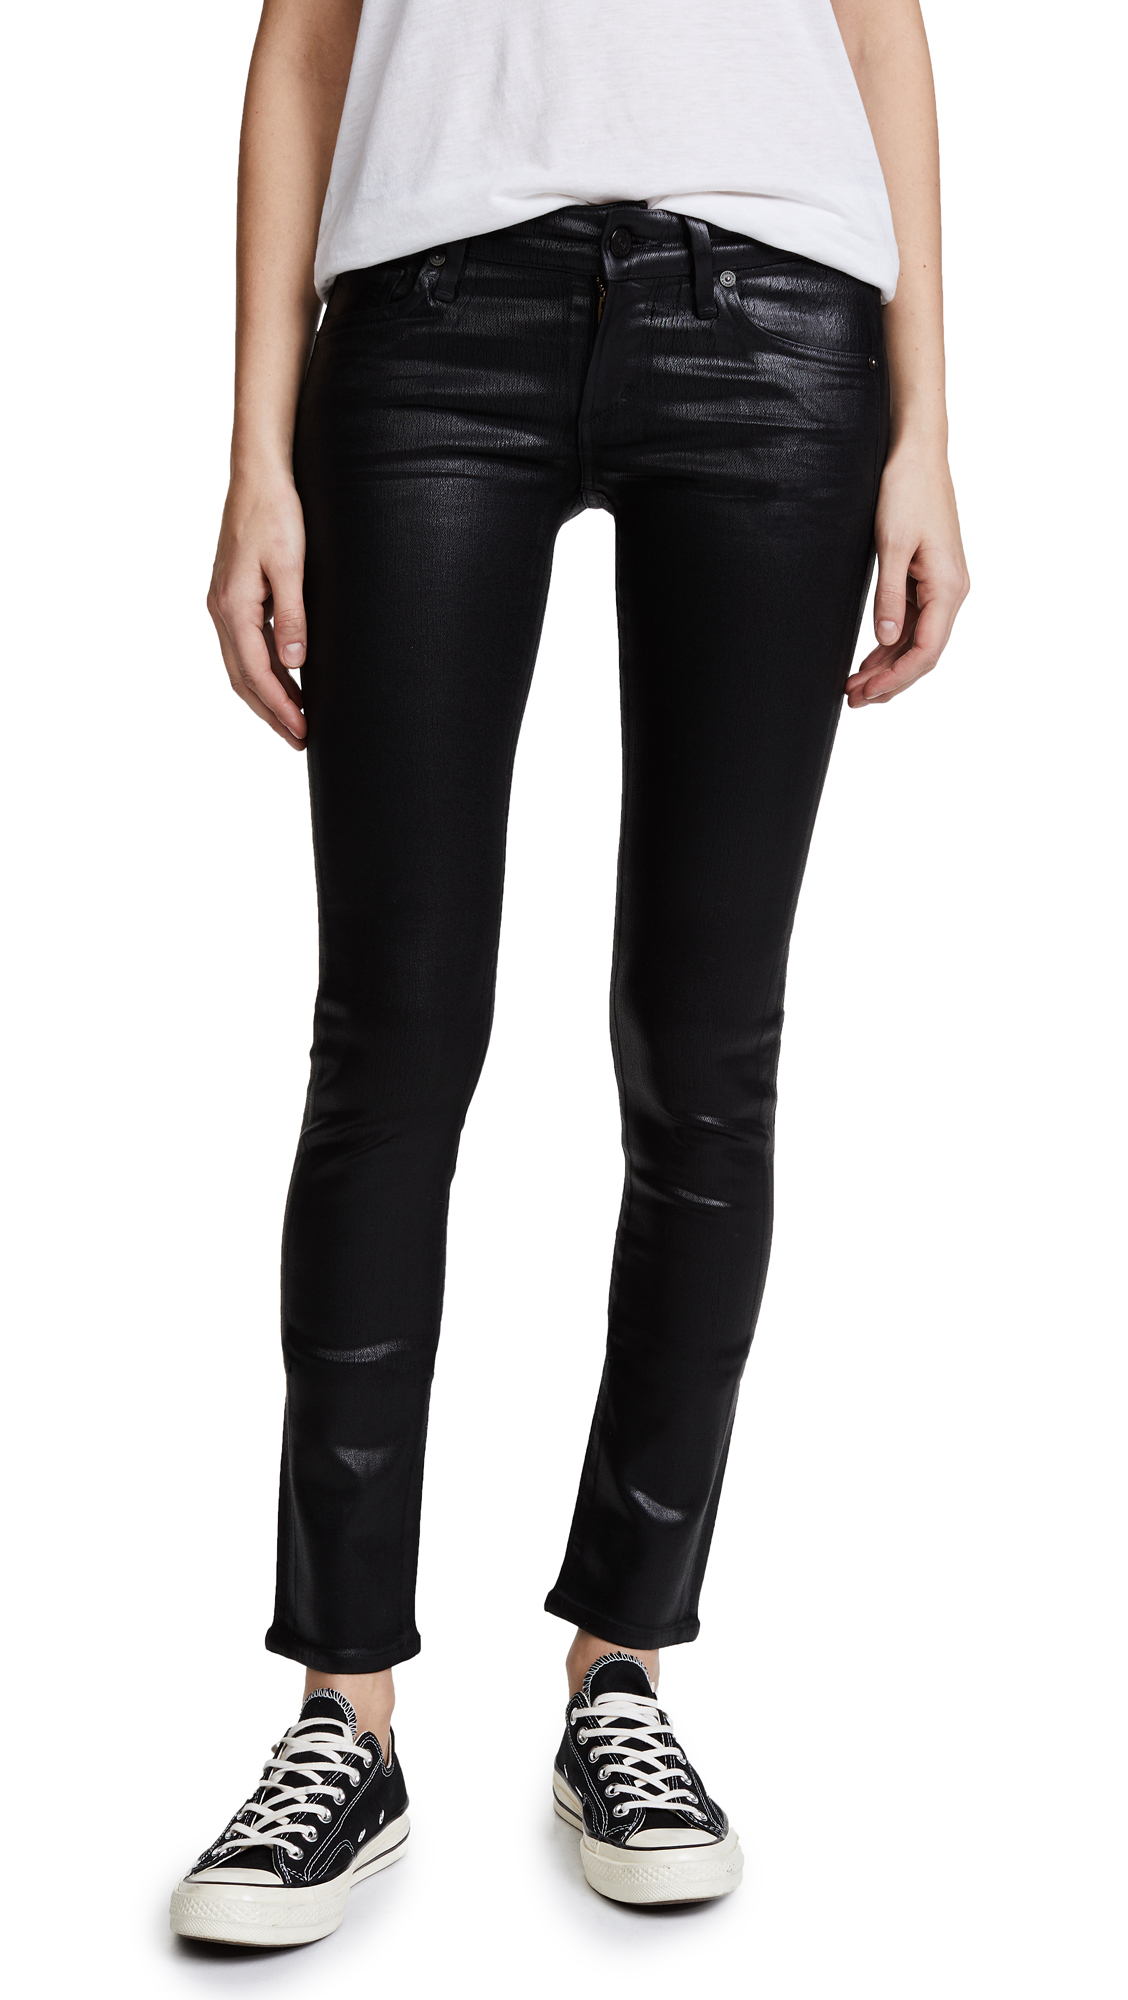 Citizens of Humanity Racer Leatherette Jeans - Black